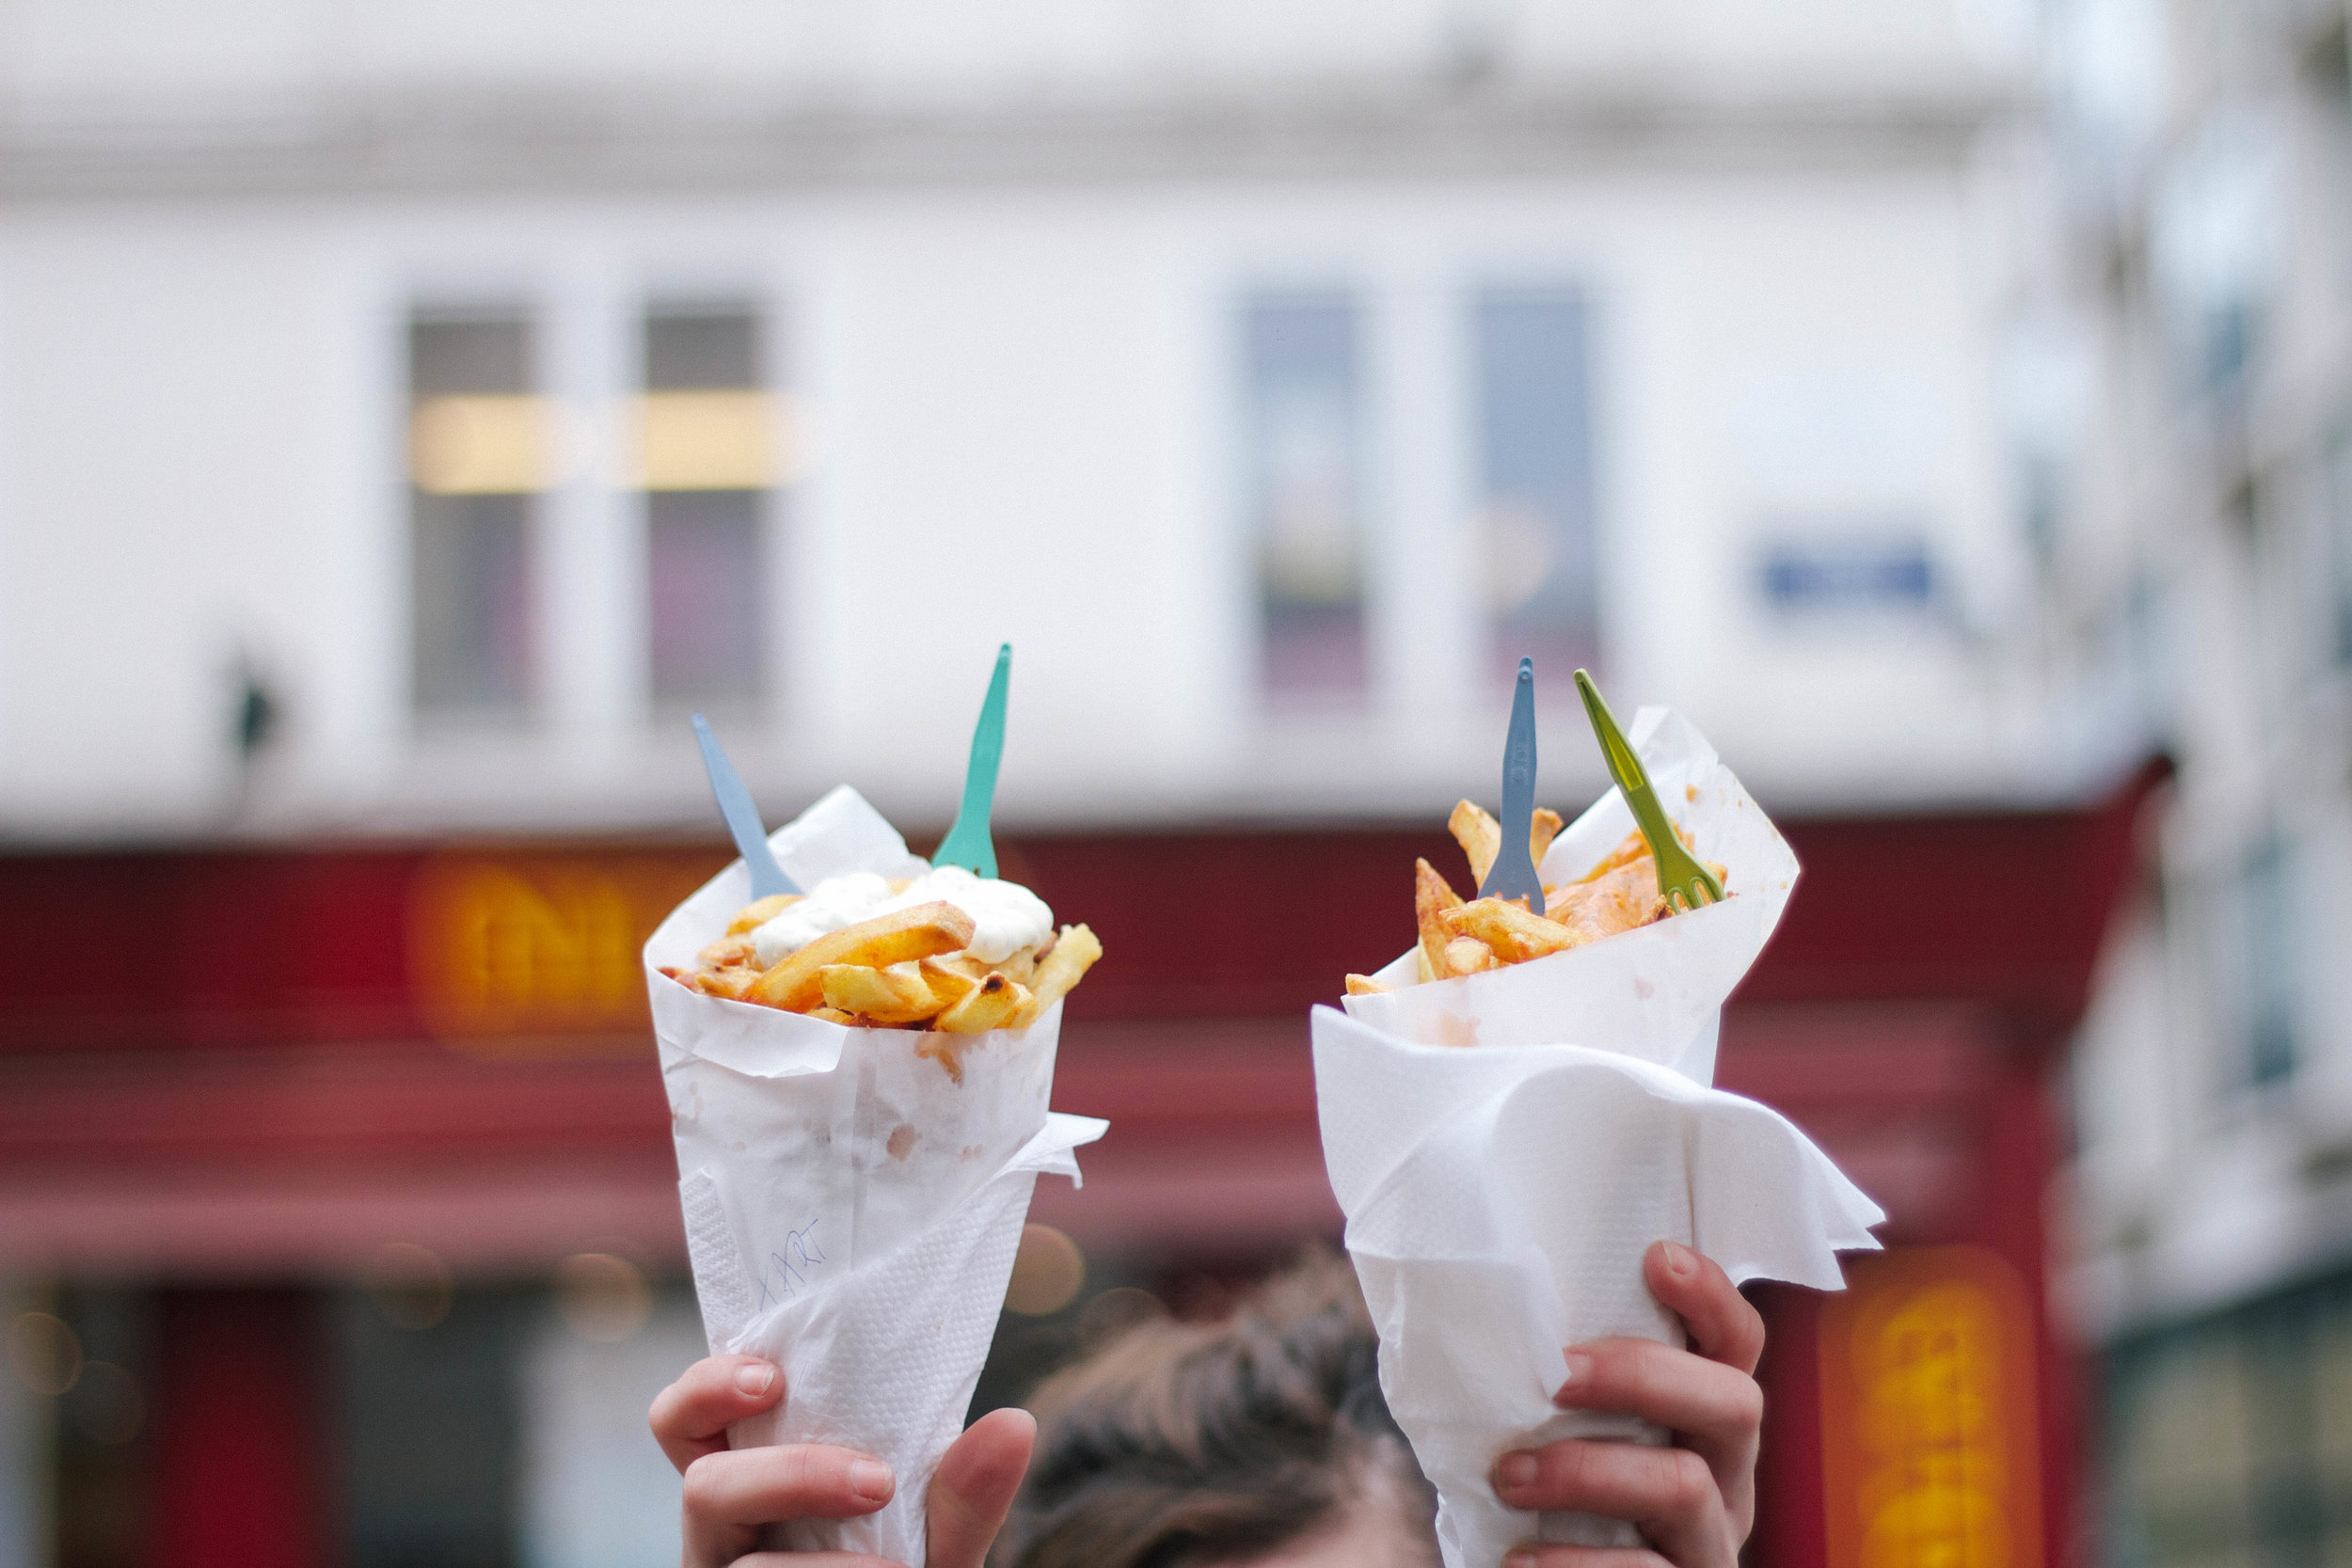 cone of chips.jpg